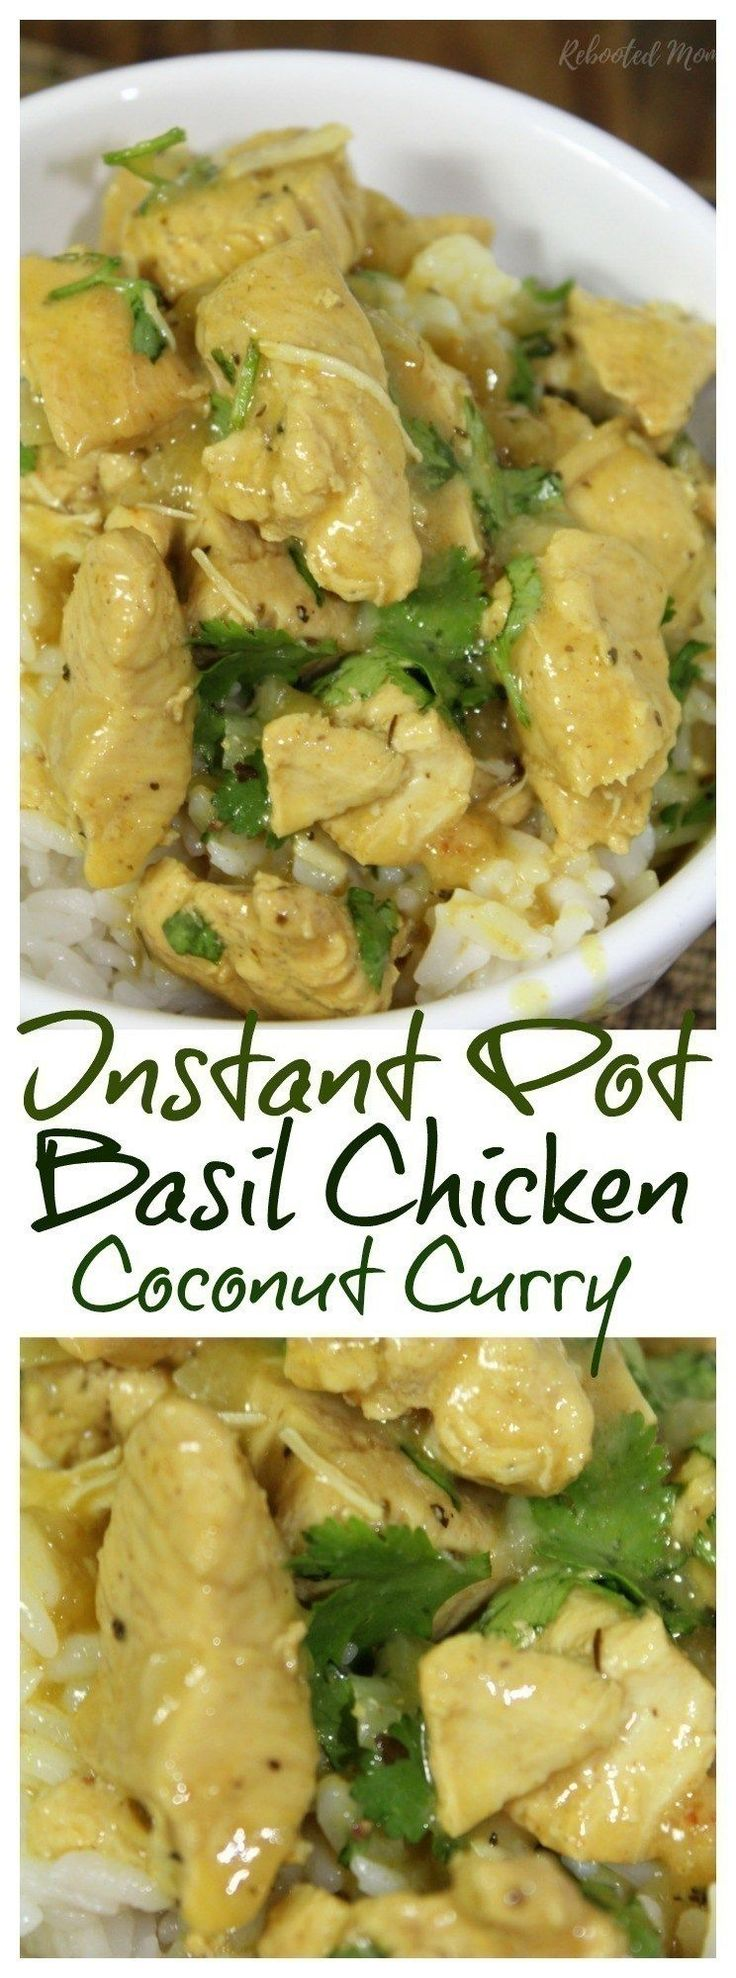 An incredibly easy basil chicken coconut curry created in less than 15 minutes using your Instant Pot.